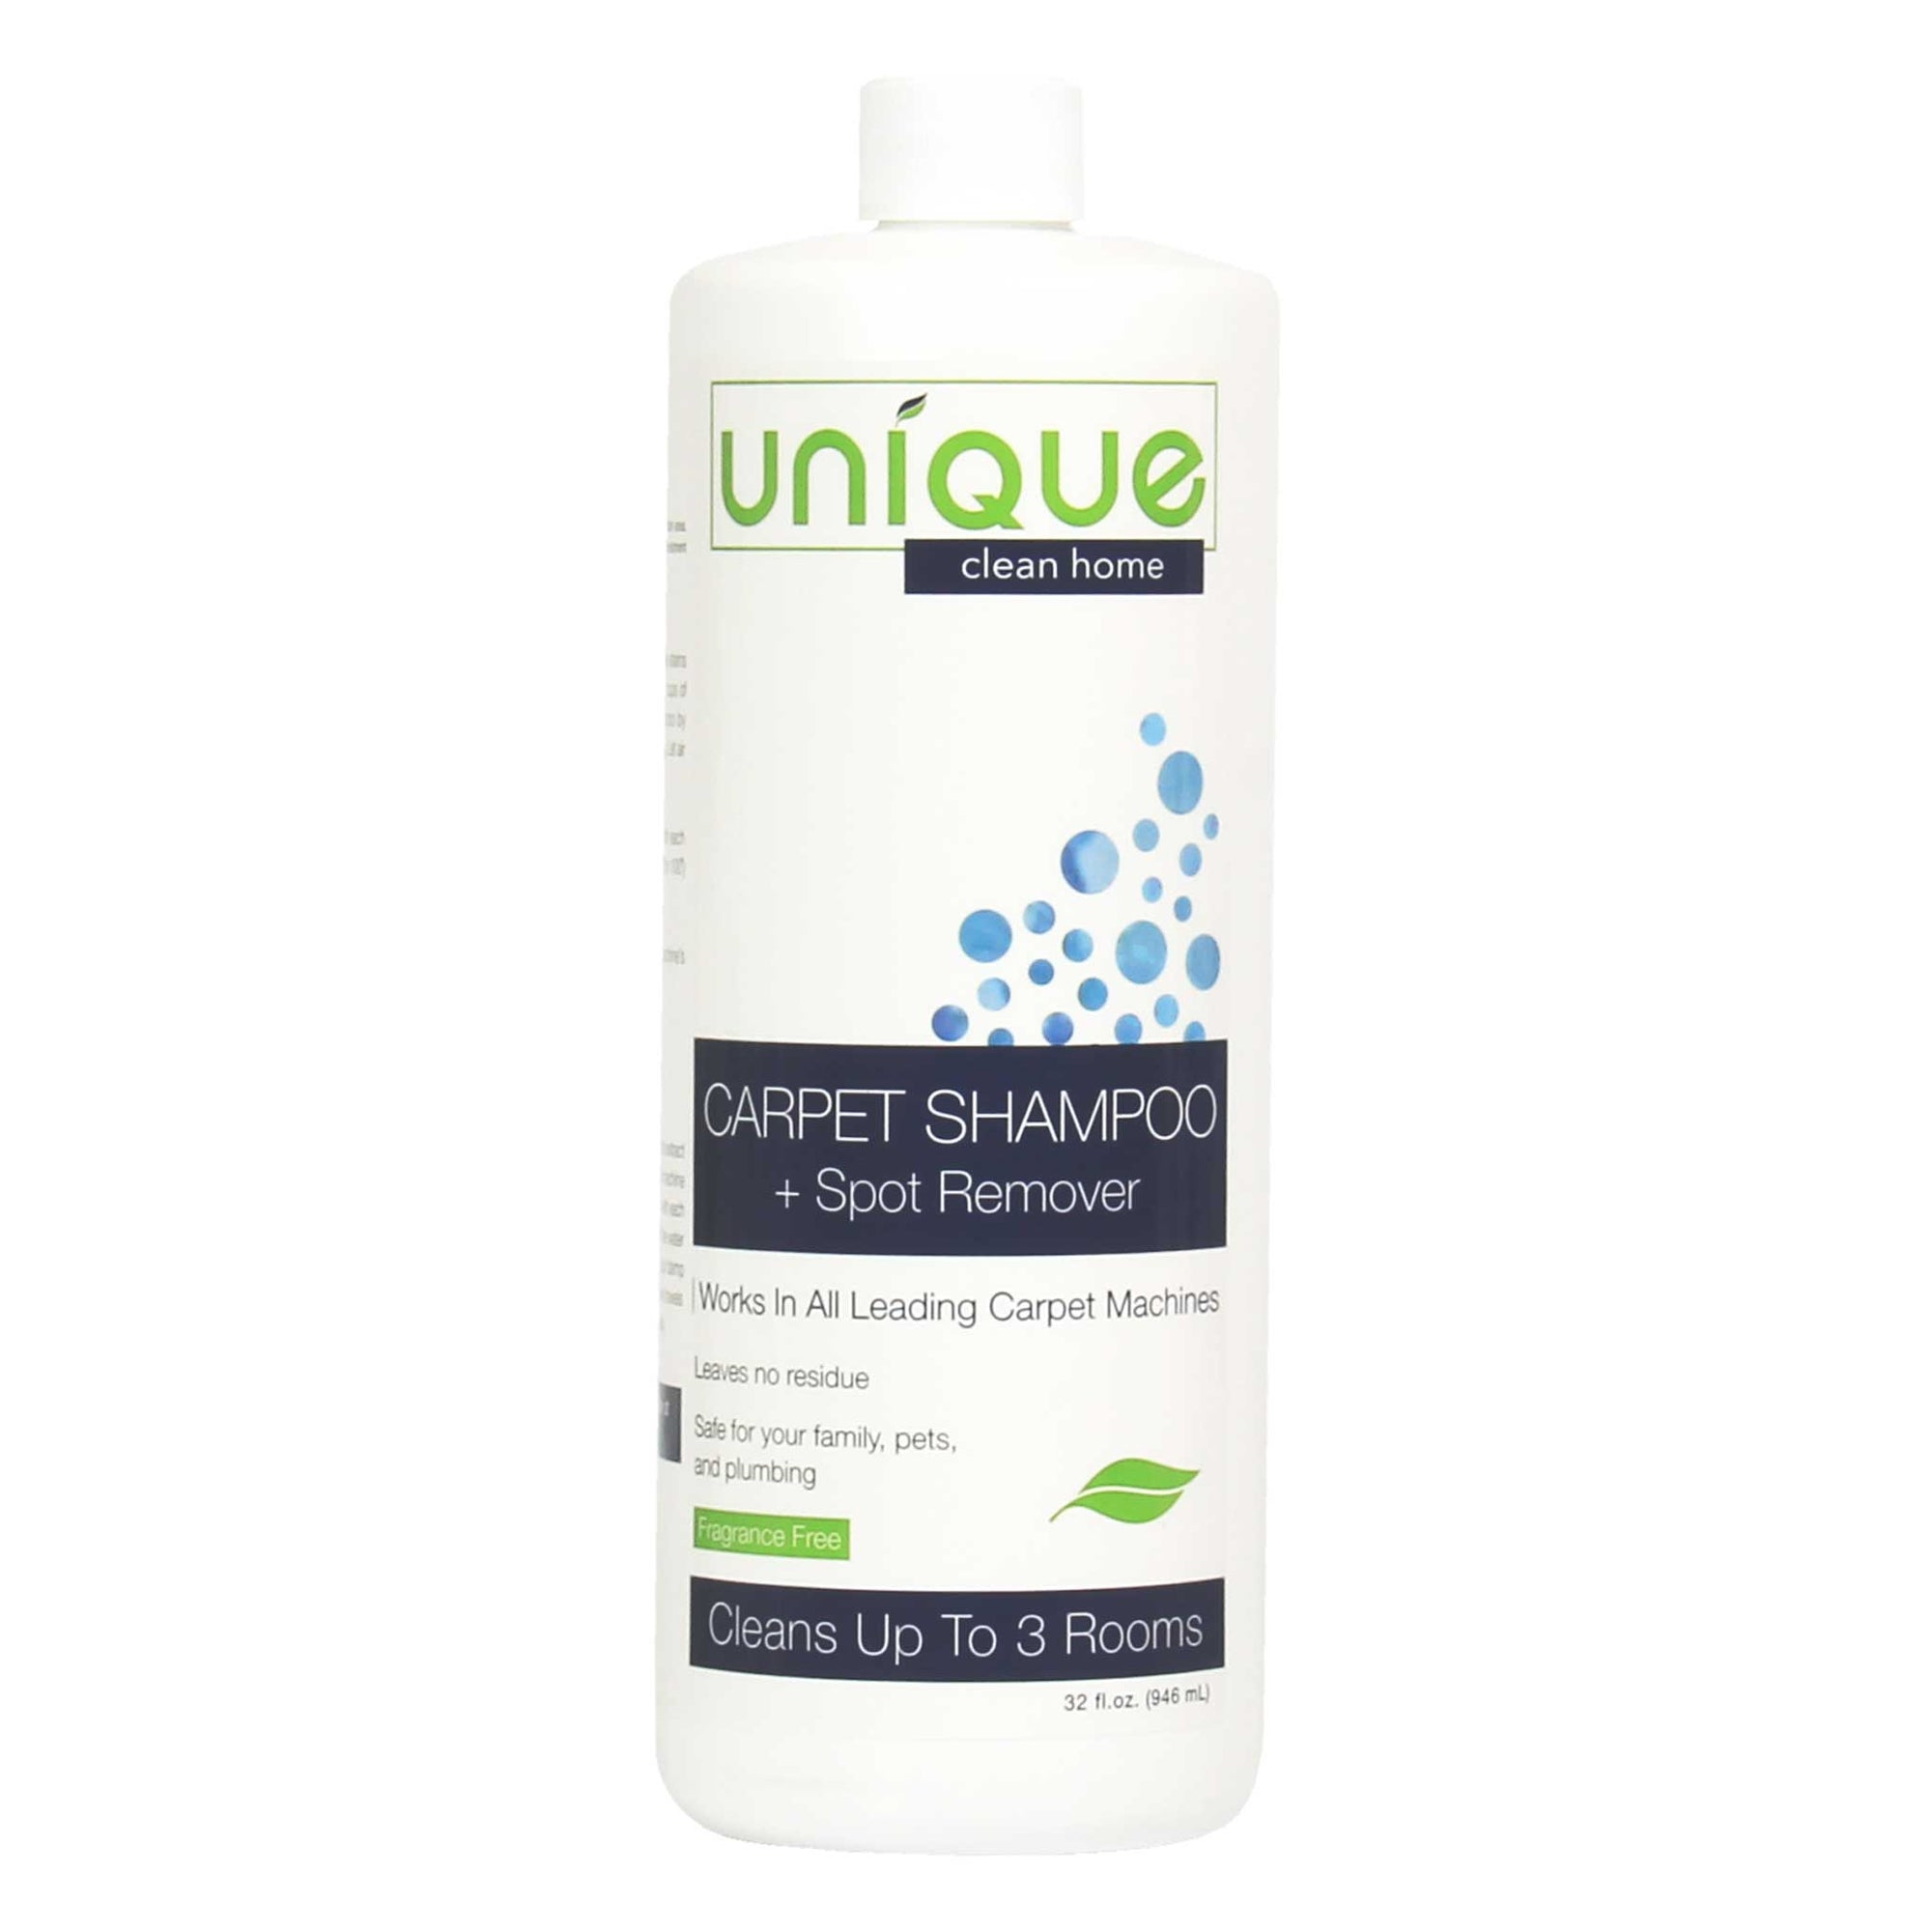 Unique Carpet Shampoo treats spots and stains using completely safe, non hazardous and eco friendly bacteria - Unique Clean Home